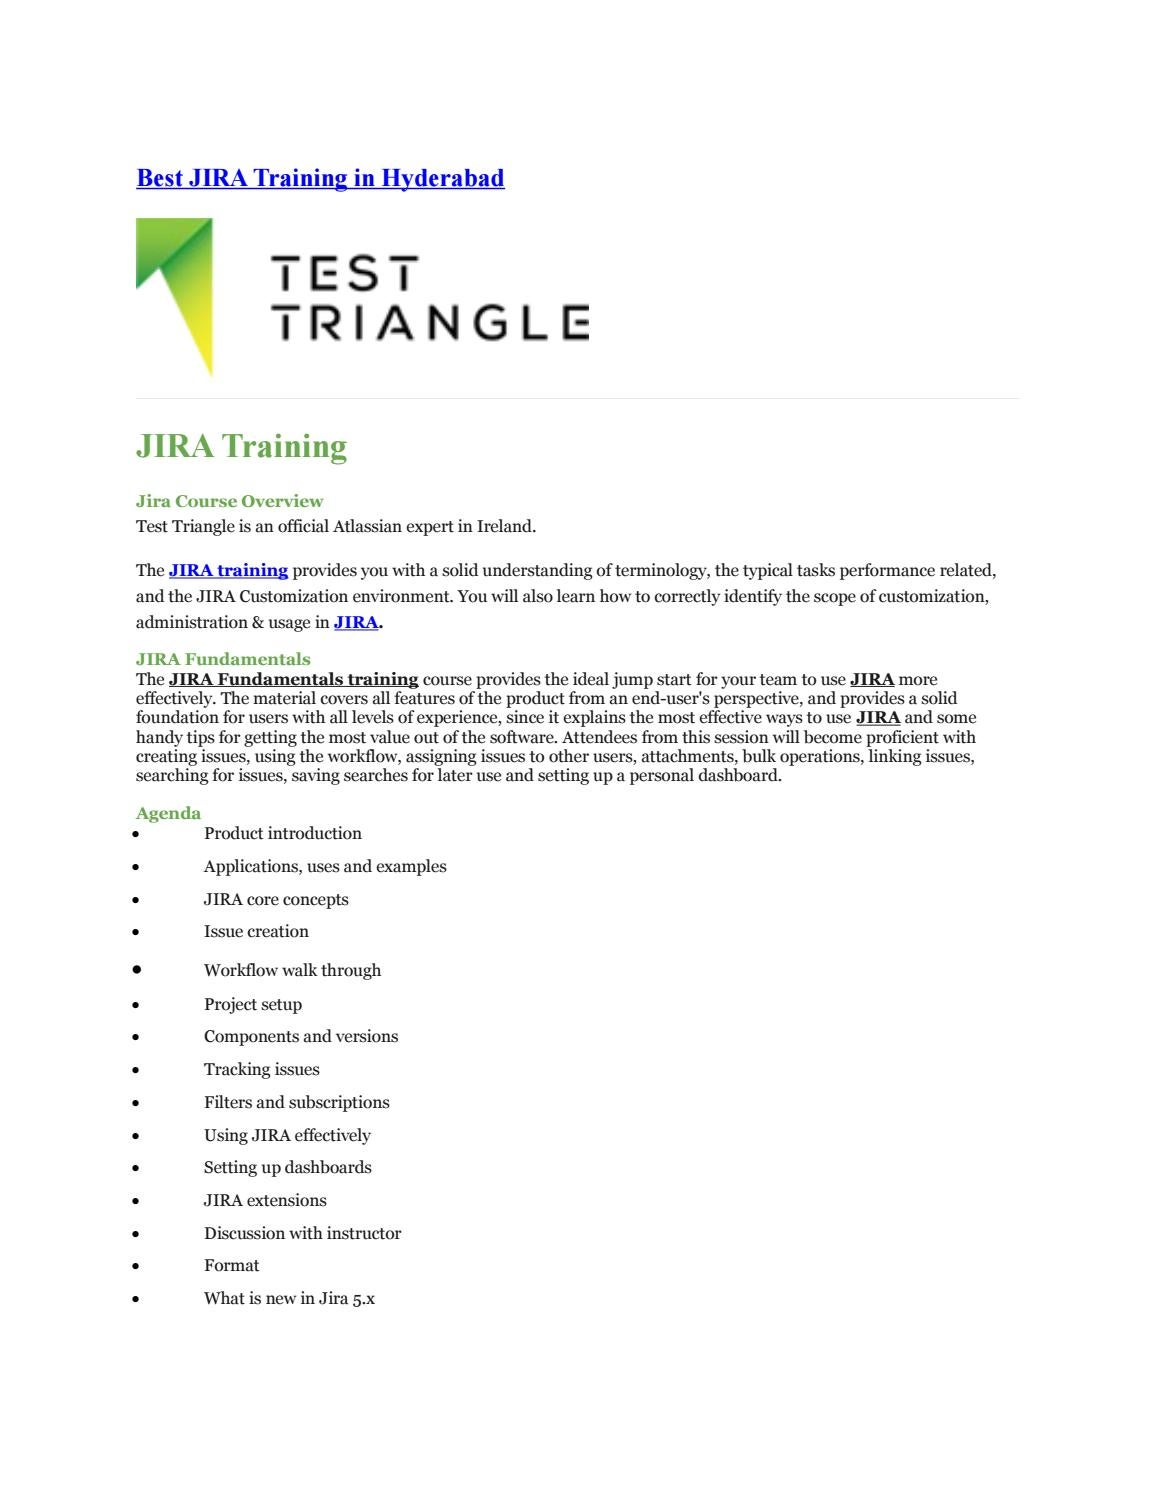 Jira Support and Training In Test Triangle by Test Triangle - issuu